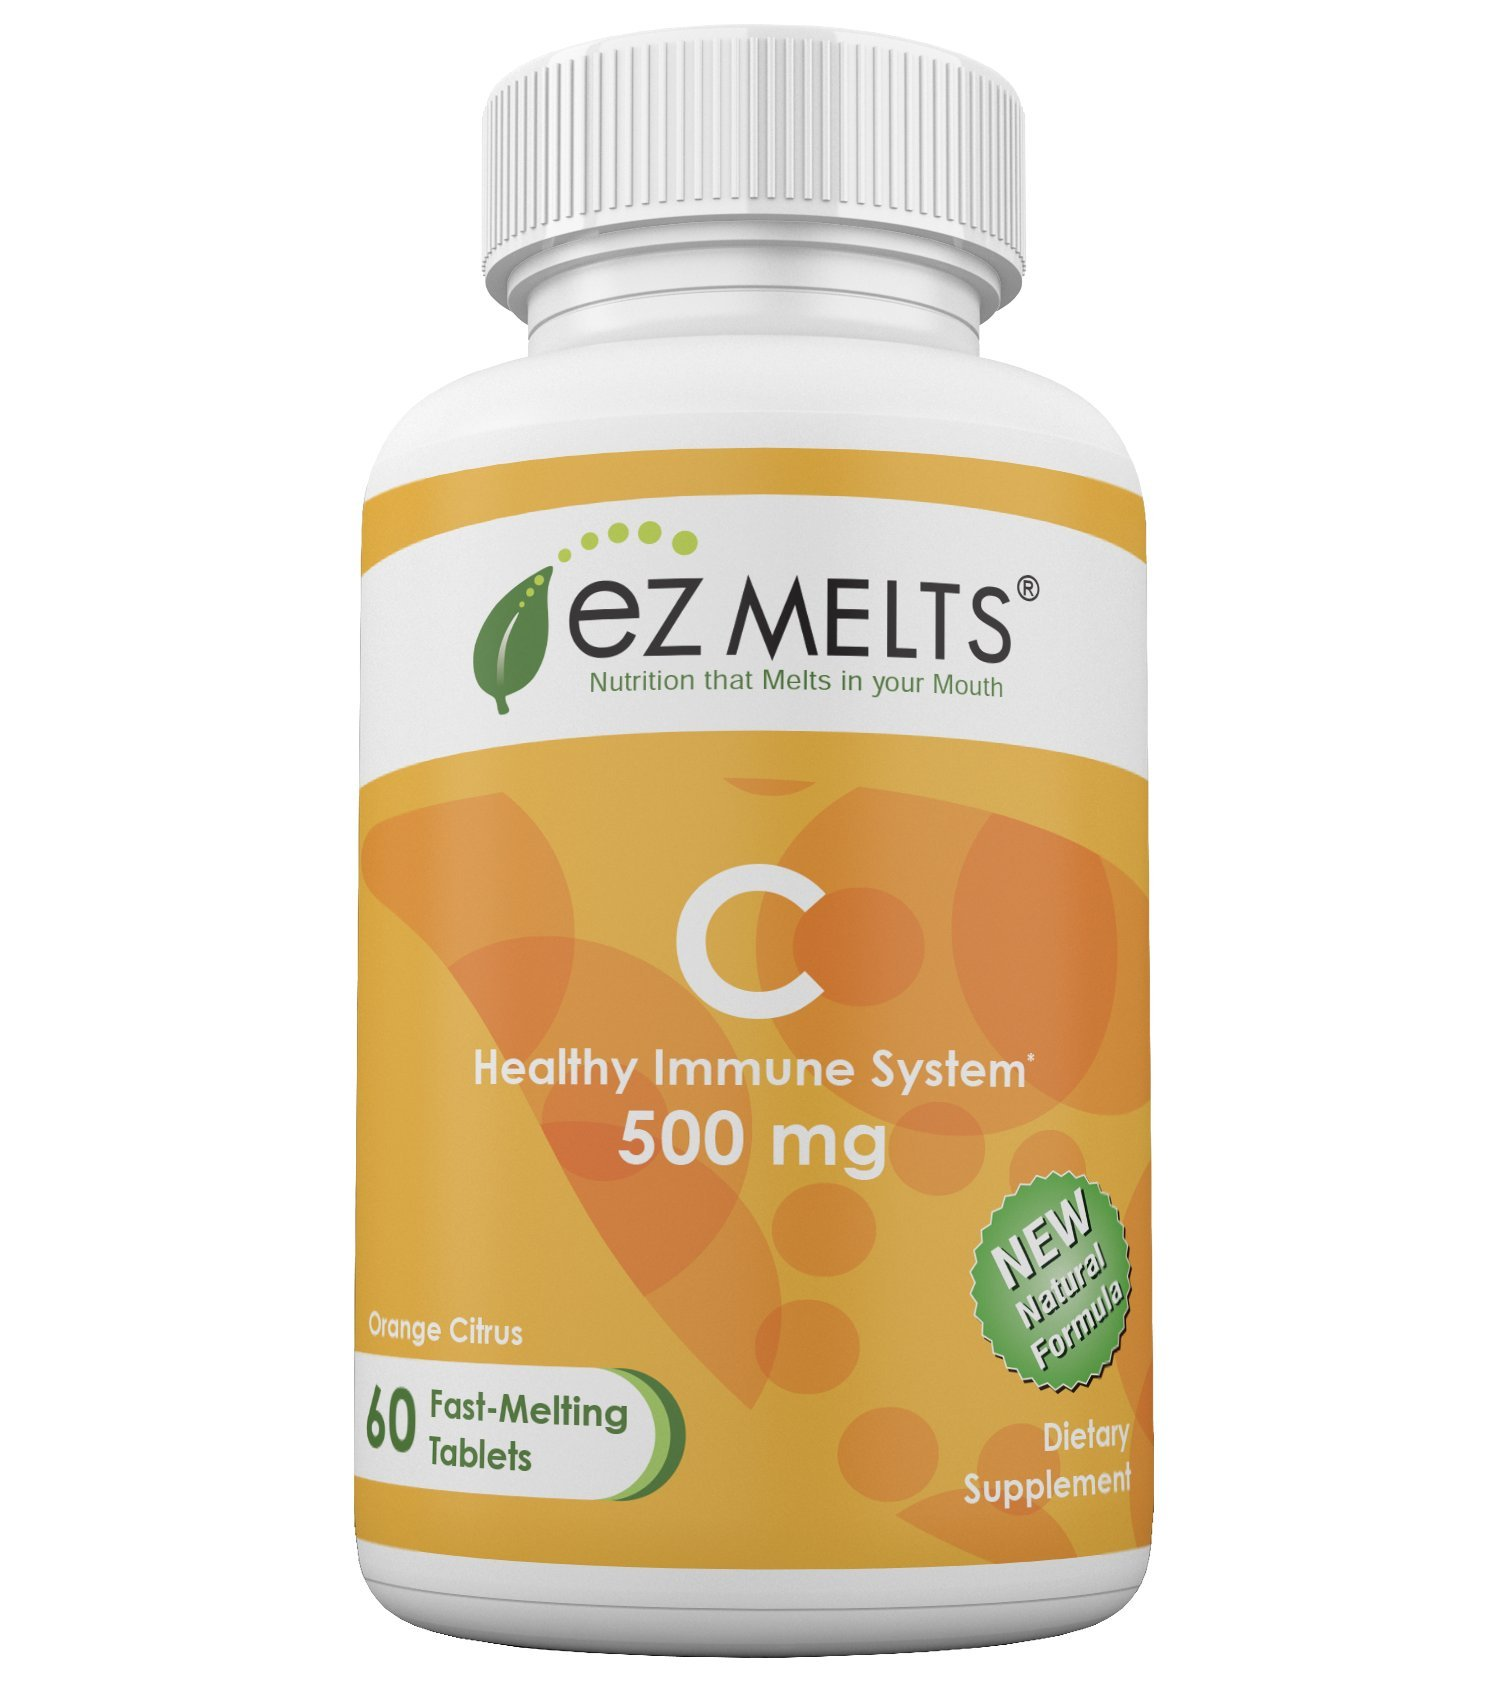 EZ Melts C, 500 mg, Dissolvable Vitamins, Vegan, Zero Sugar, Natural Orange Flavor, 60 Fast Melting Tablets, Vitamin C Supplement